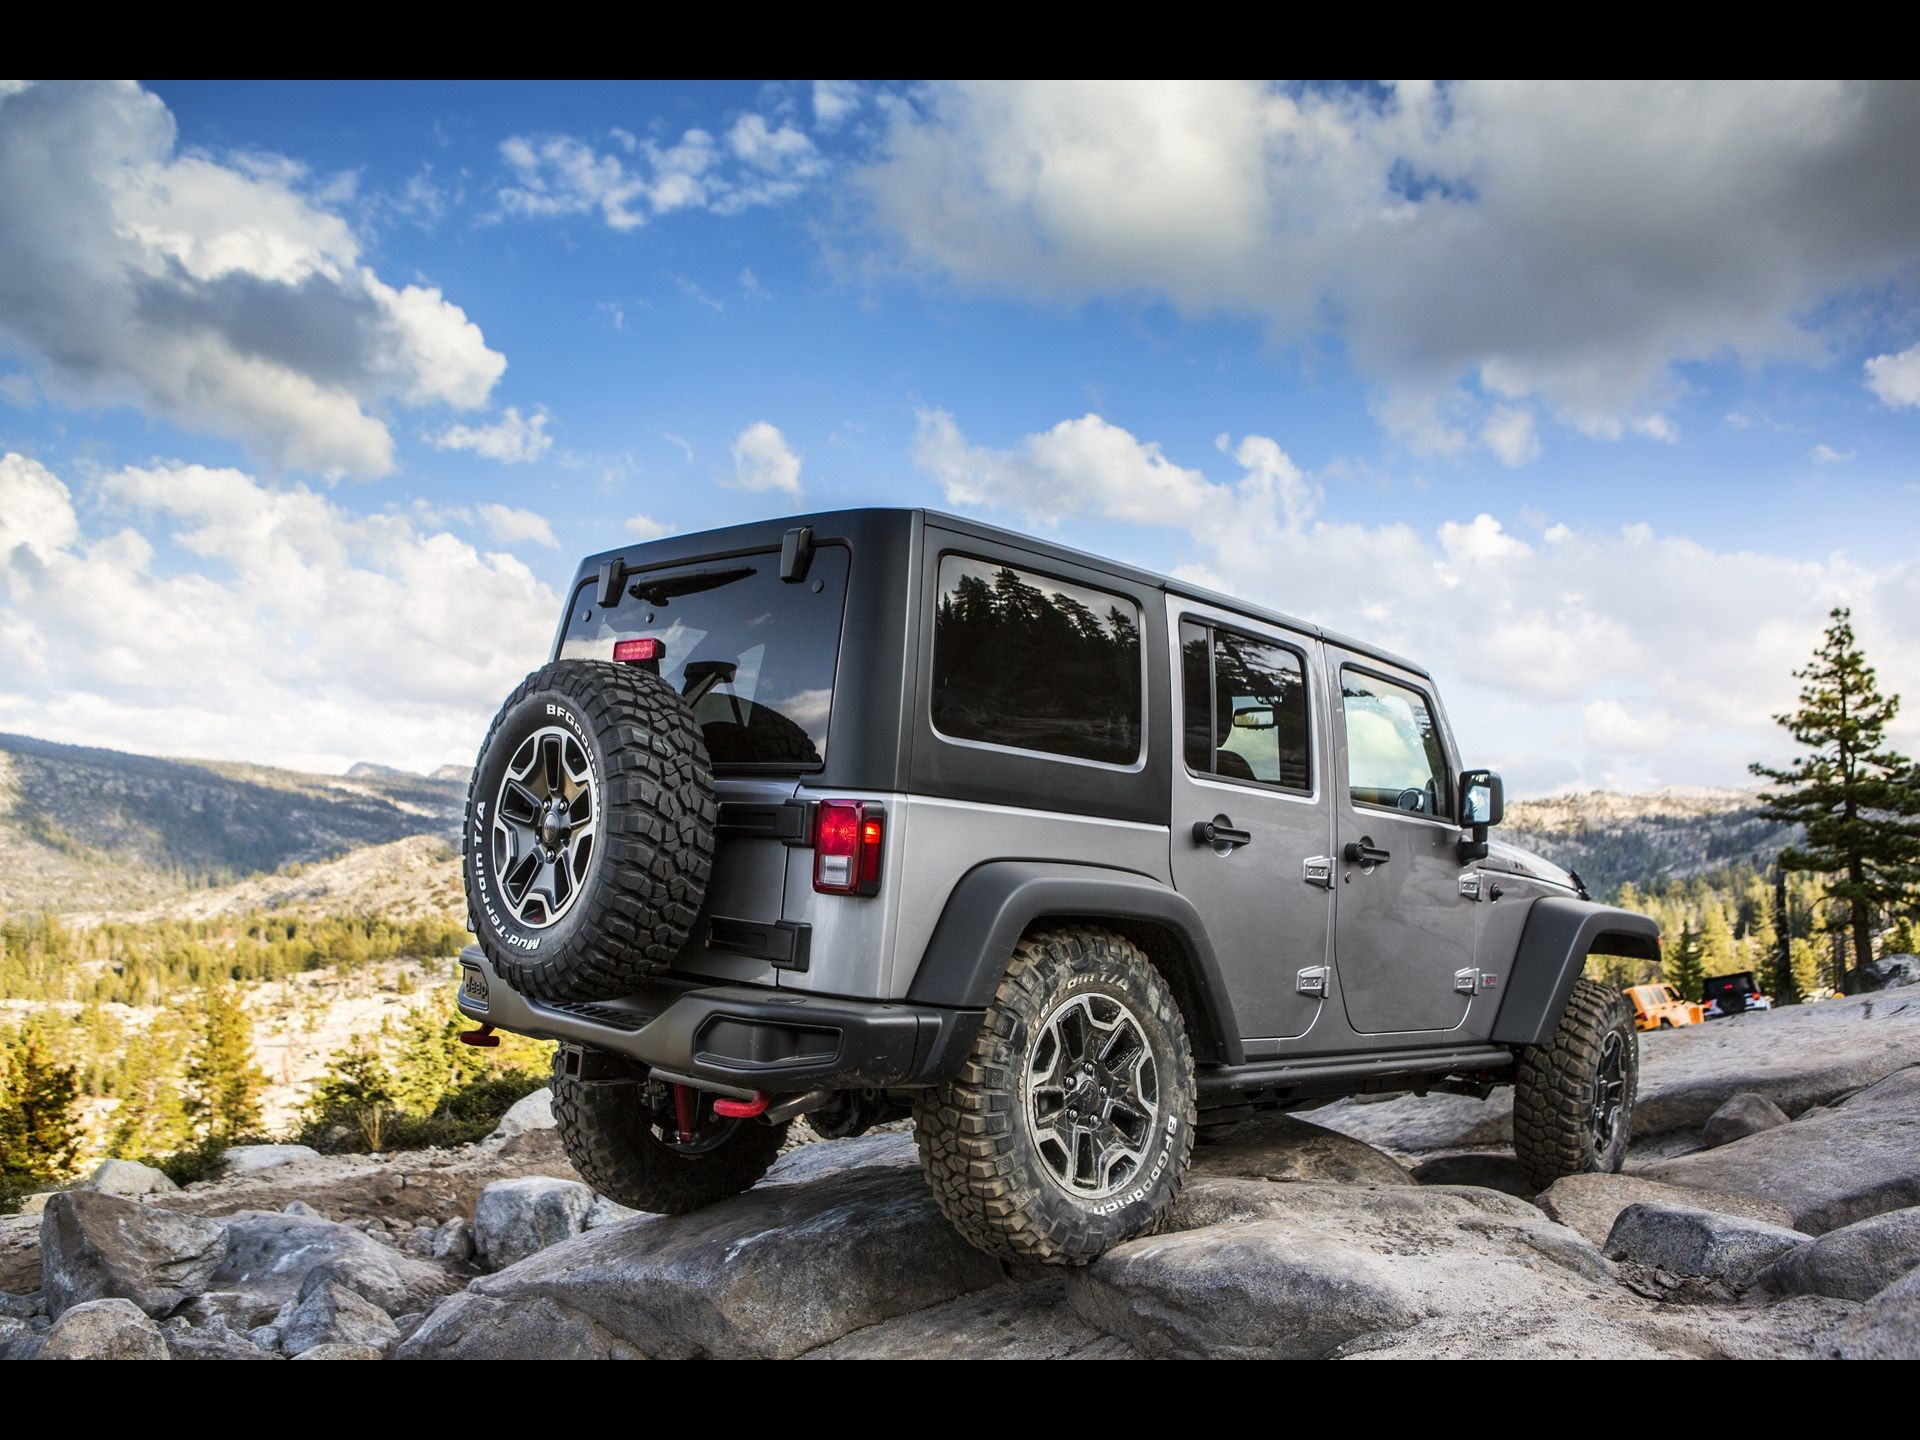 Jeep Wrangler Wallpaper Hd 63 Images